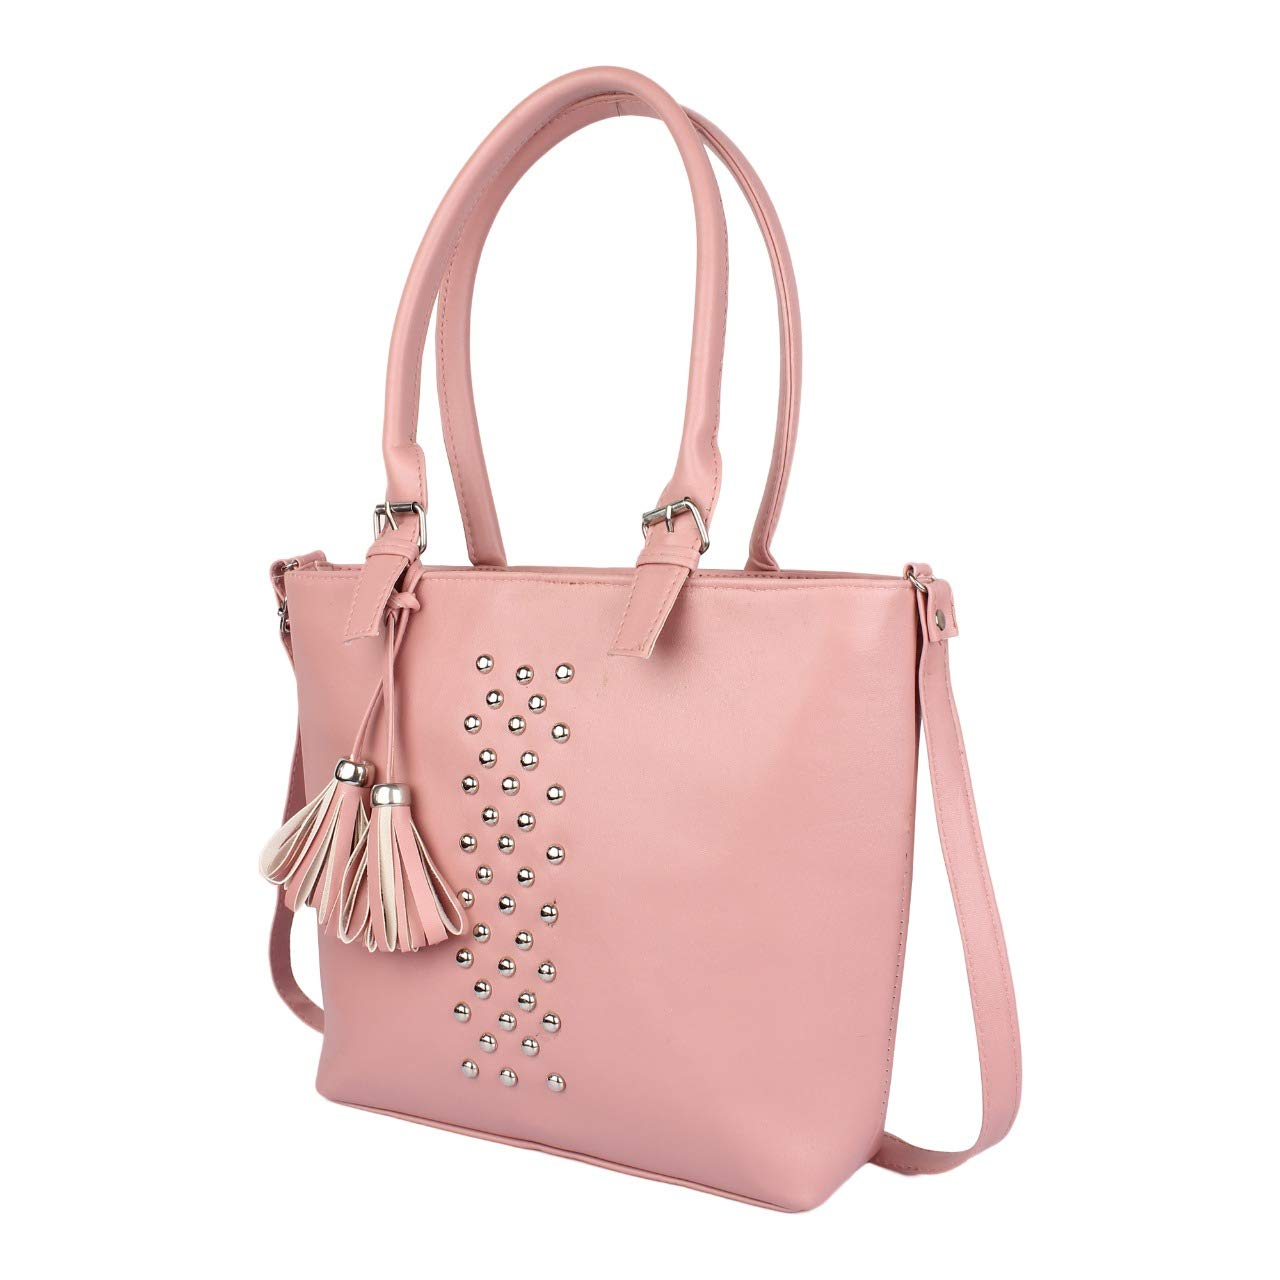 fa51455d7d Typify Women s Leatherette PU Handbag with Sling Belt for College (Pink)   Amazon.in  Shoes   Handbags